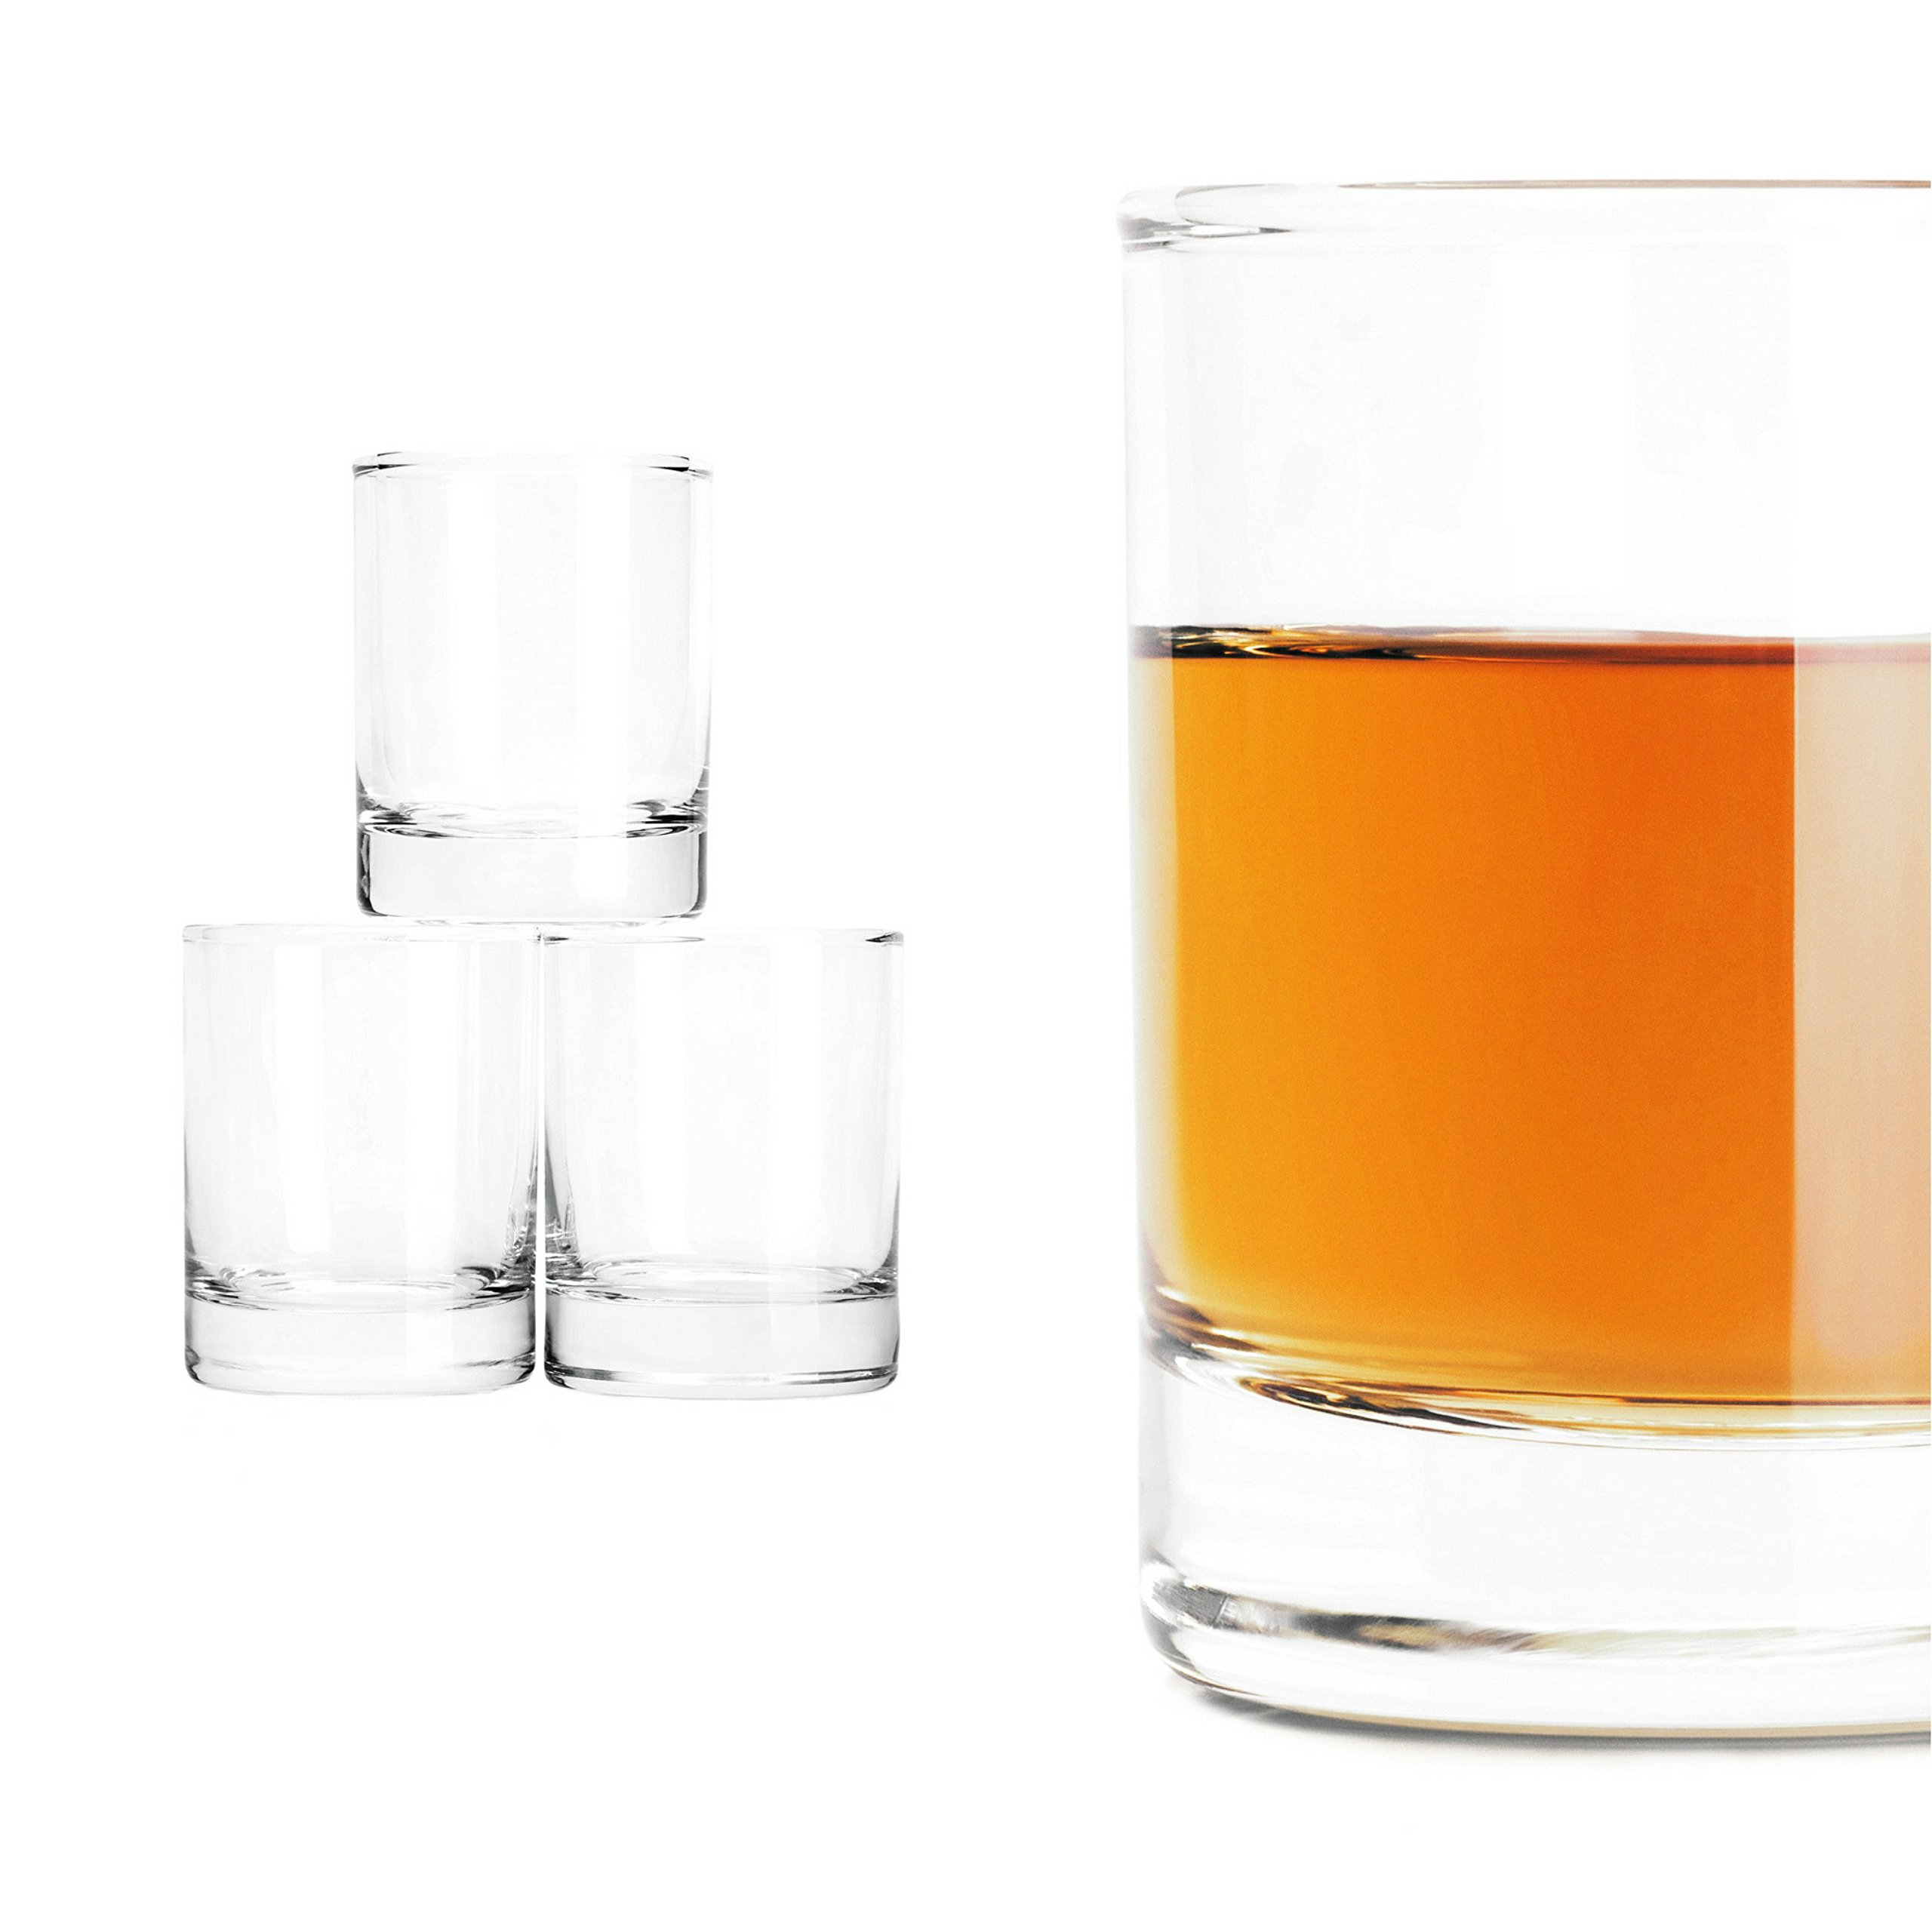 Shot Glasses from Taylor'd Milestones - Classic 3.5 oz Shooter Glass with Heavy Base. Gift Set of 4 for Whiskey, Tequila, Espresso, Vodka, Shooters, Liqueur Tasting, Candles & Desserts.